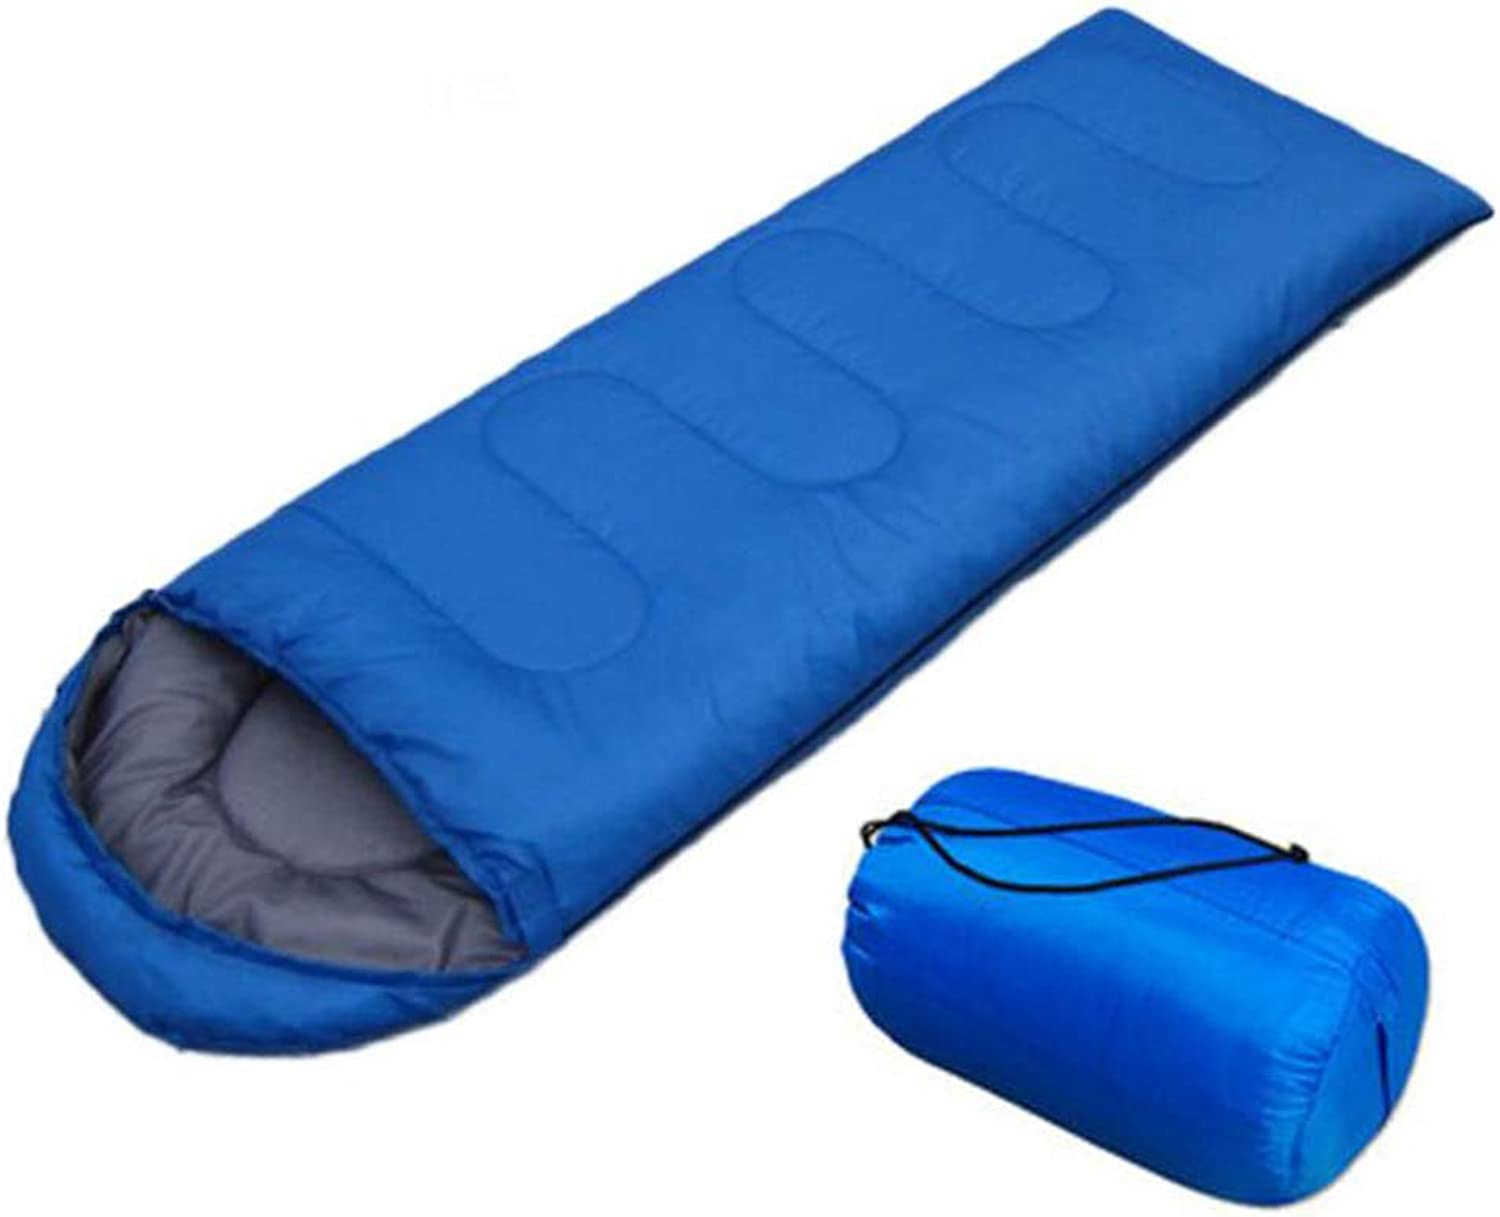 MYYDD Schlaftasche, Umschlag mit Hood Sleeping Bag 3-4 Season Sleeping Sleeping Sleeping Bag Outdoor Camping Adult Sleeping Bag B07PNM8PL2  Schön eca899